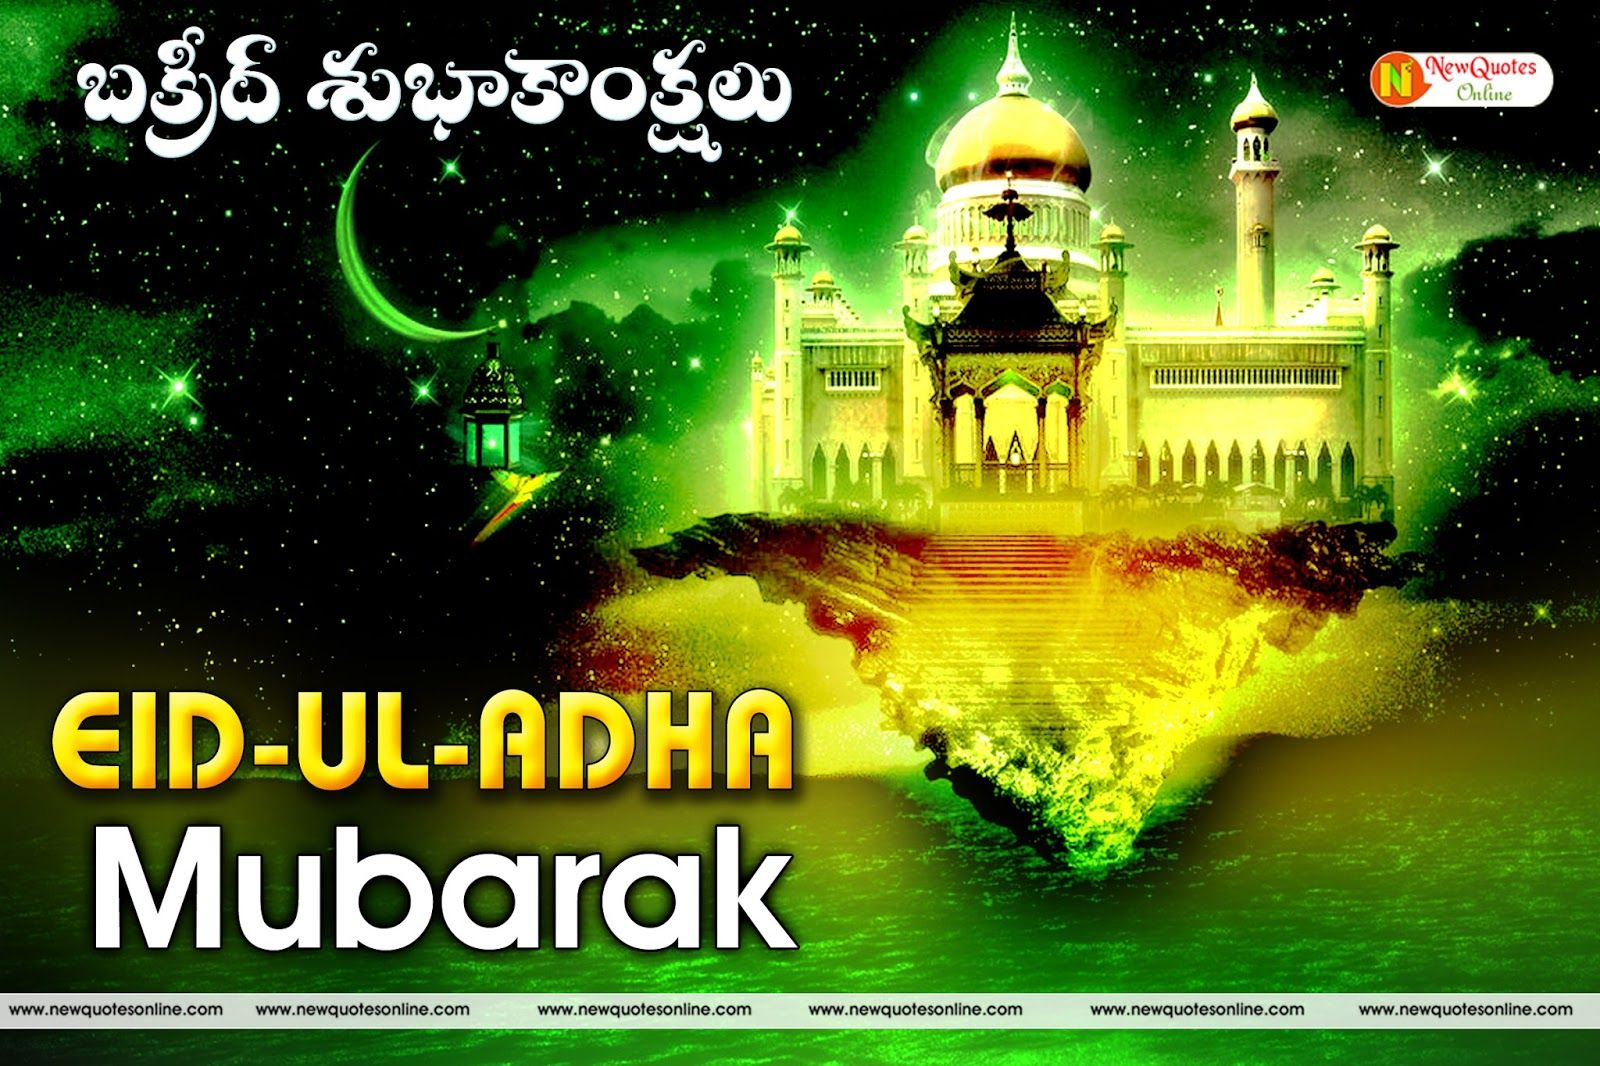 Cute happy eid ul adha mubarak islamic wish photos images cute happy eid ul adha mubarak islamic wish photos images greetings best kristyandbryce Choice Image